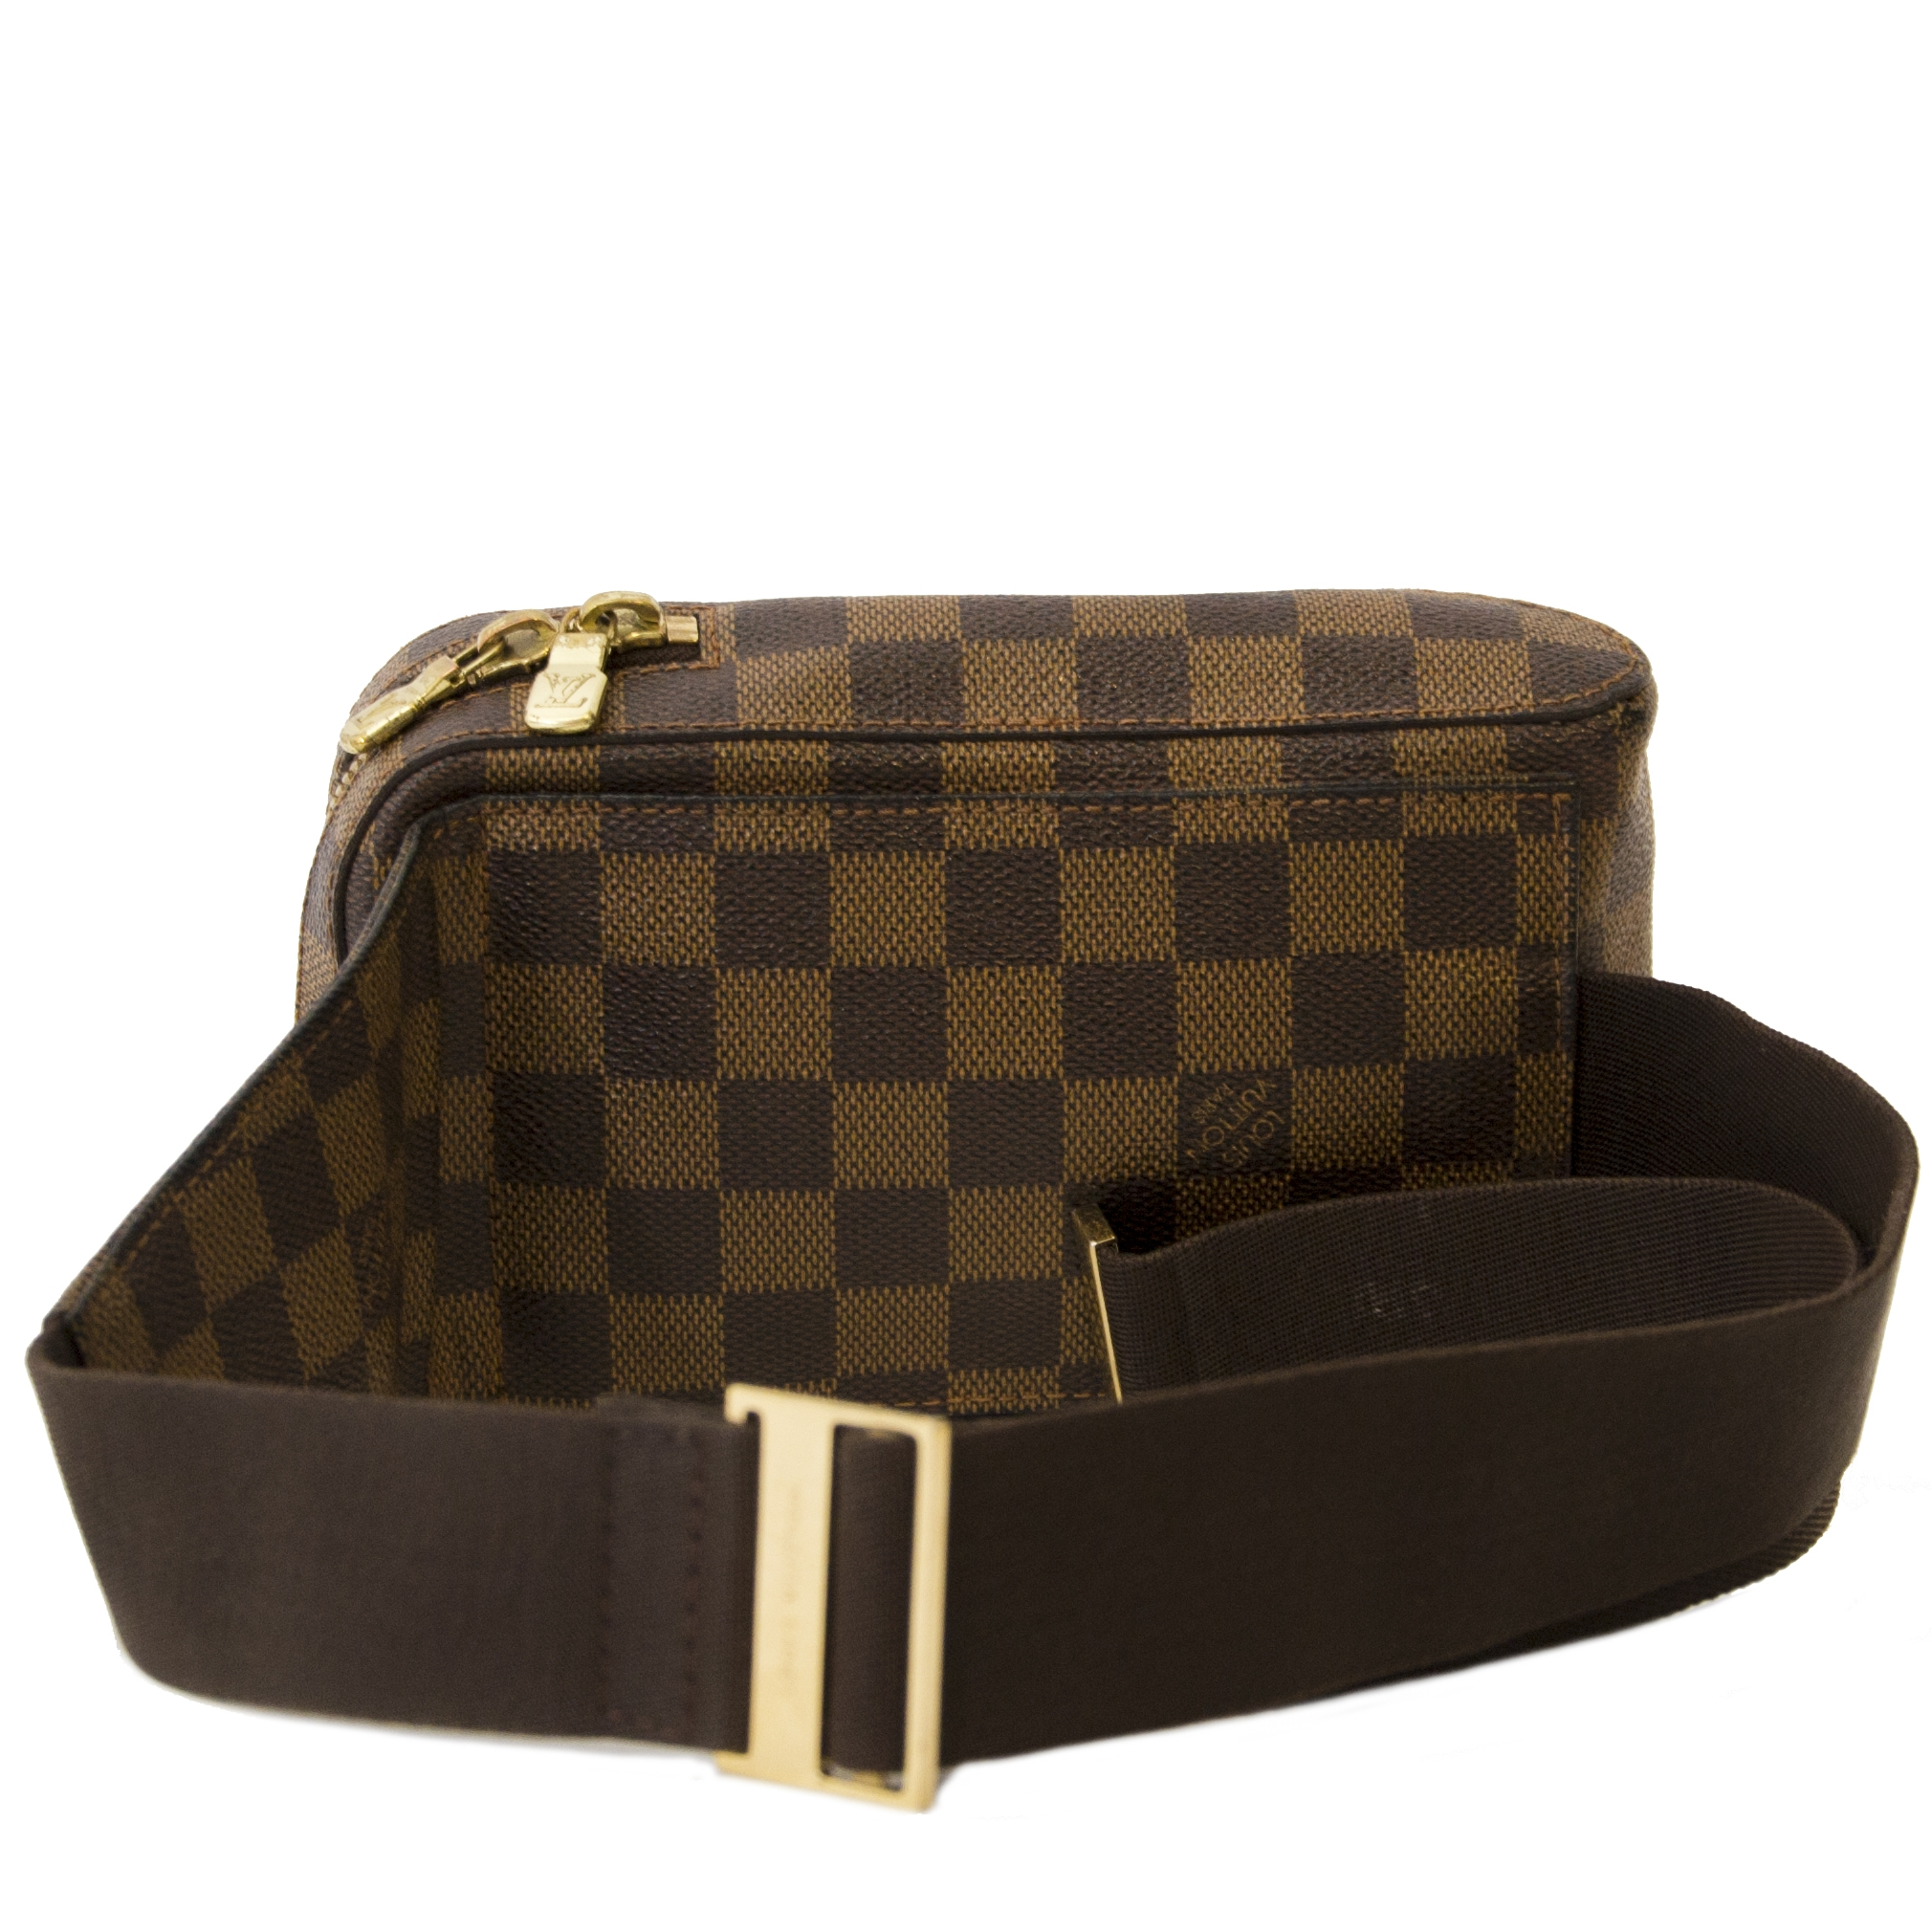 3c5171705464 Labellov Louis Vuitton Brown Damier Ebene Geronimos Waist Bag ○ Buy and  Sell Authentic Luxury